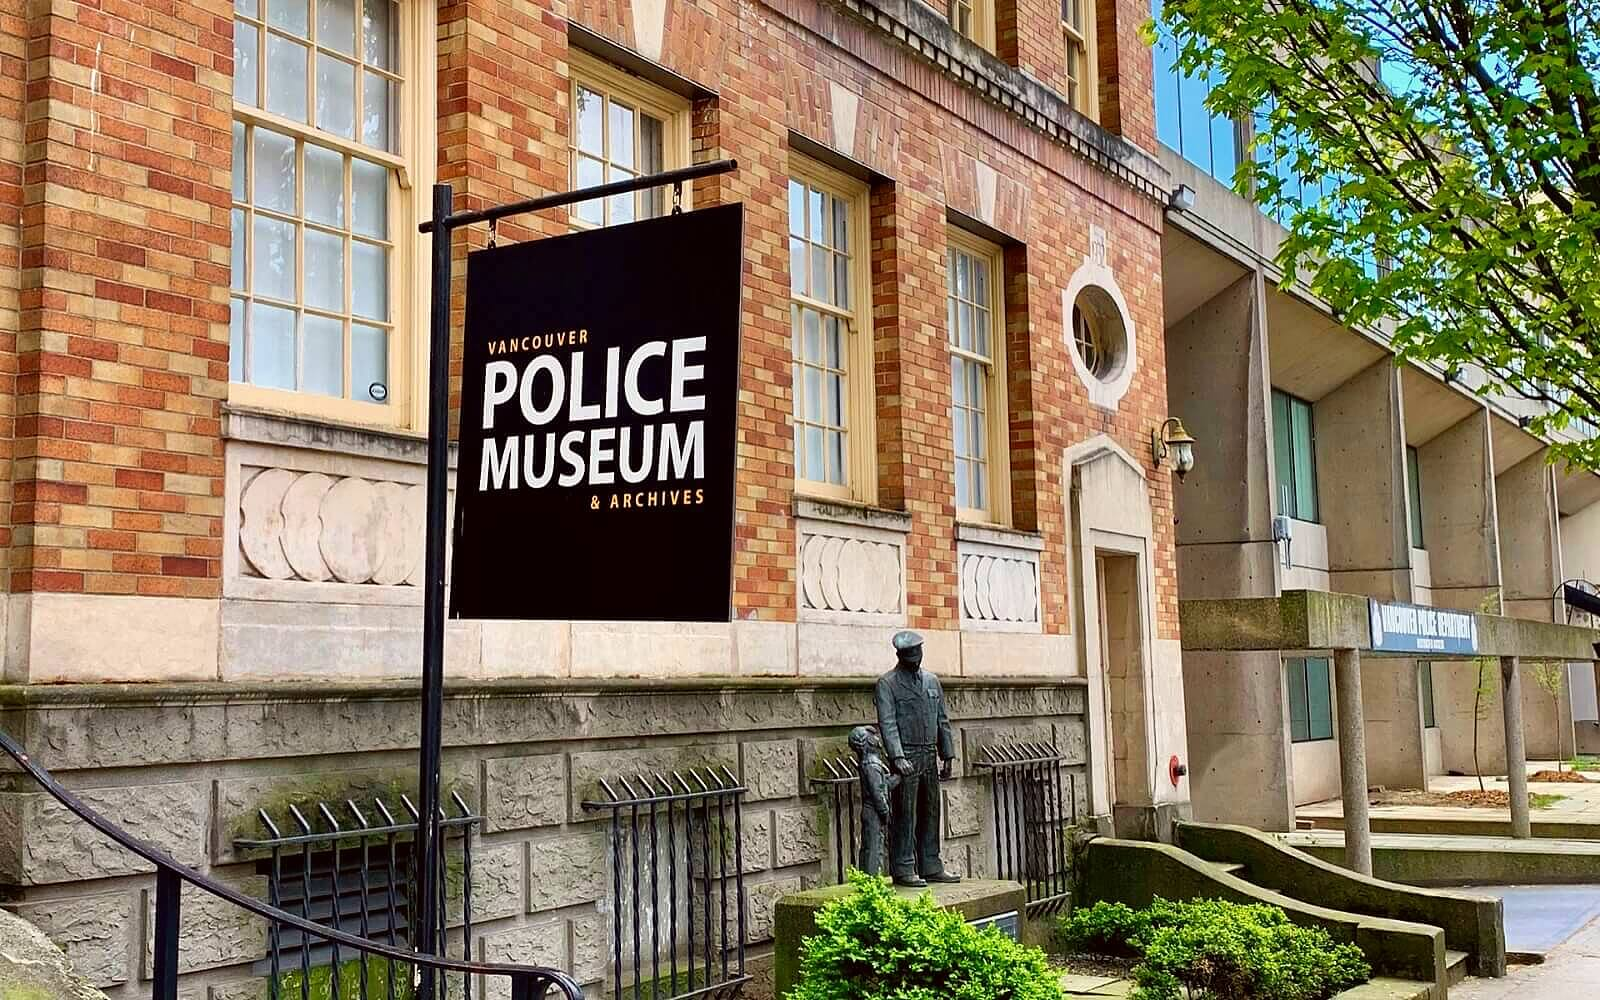 The entrance to the Vancouver Police Museum